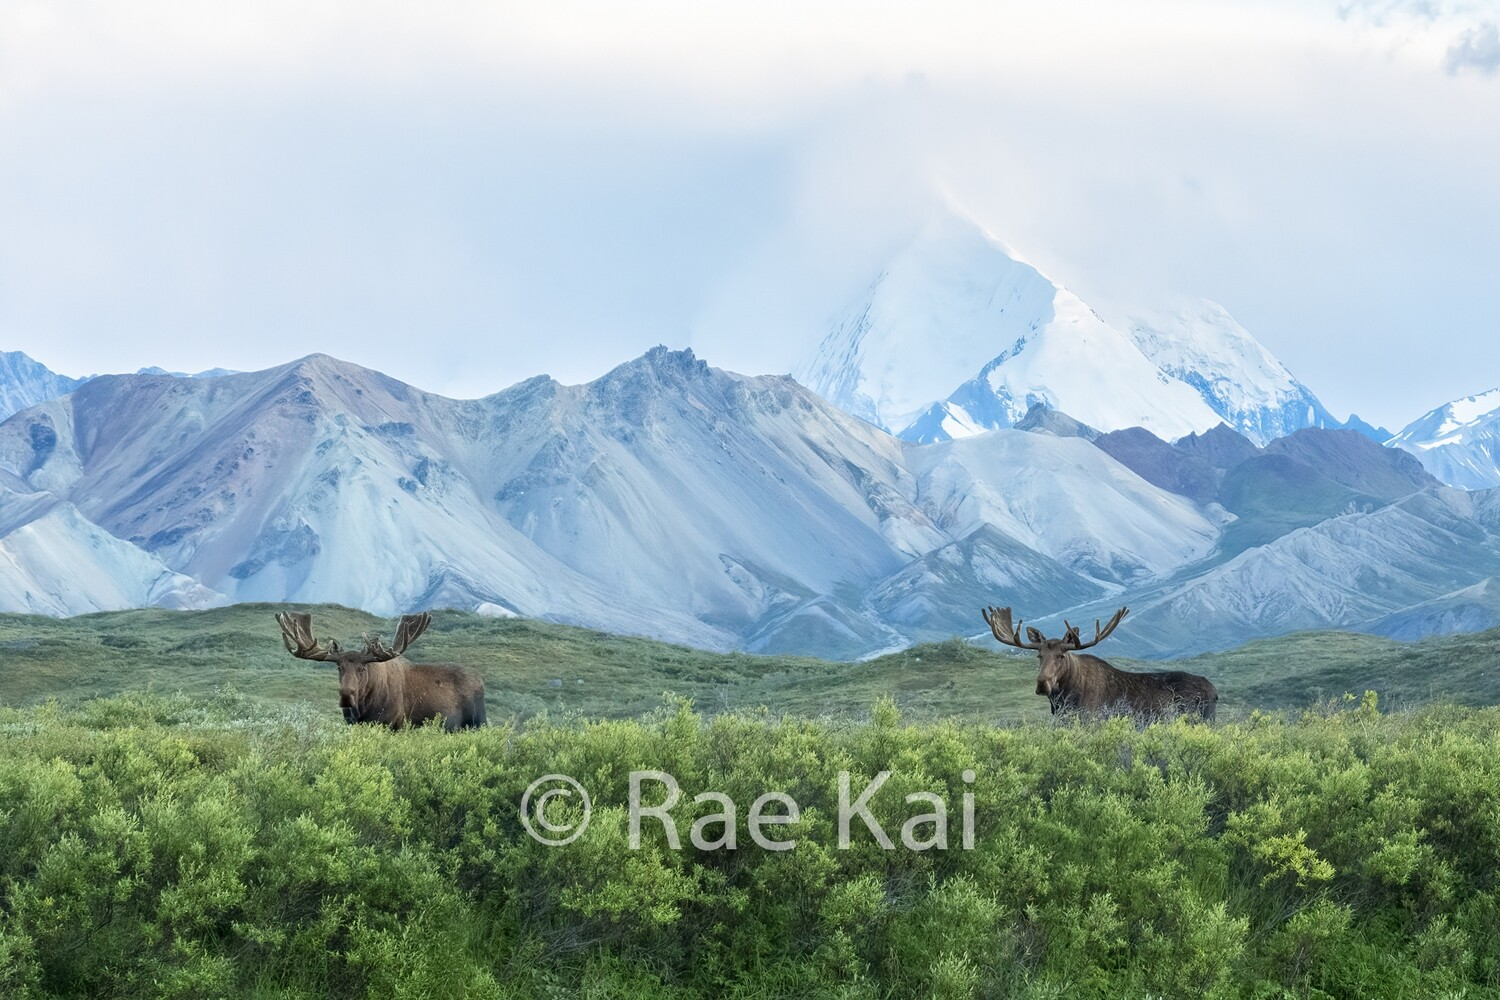 Moosescape-Traditional Photo